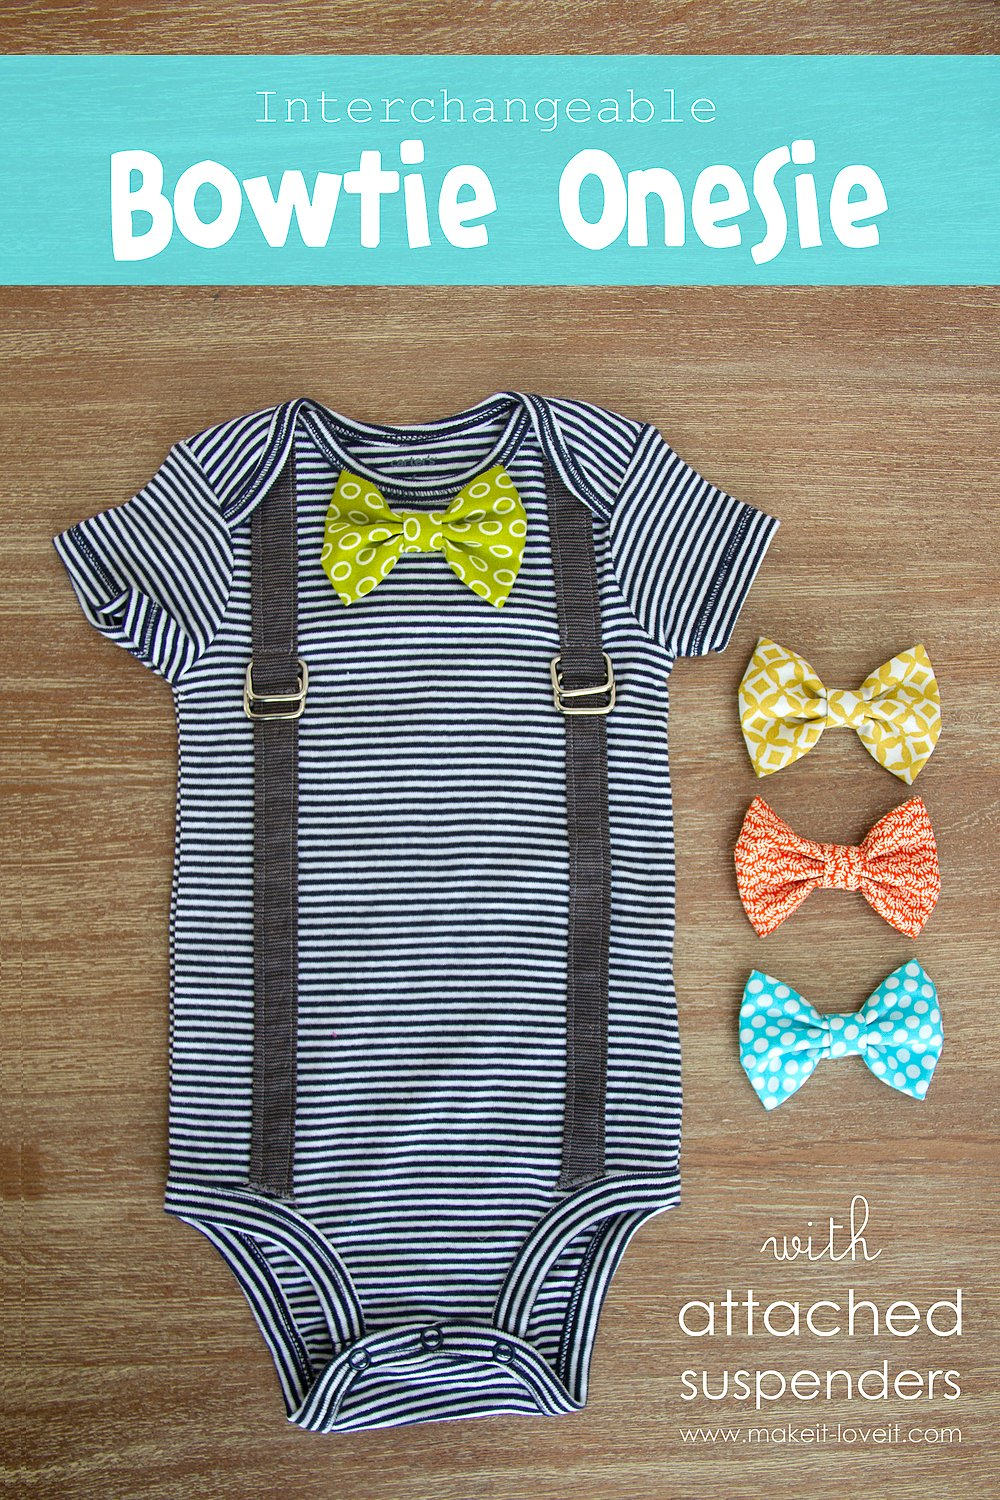 Baby Bow Ties Pattern : pattern, Interchangeable, Bowtie, Onesie....with, Attached, Suspenders, Variations)